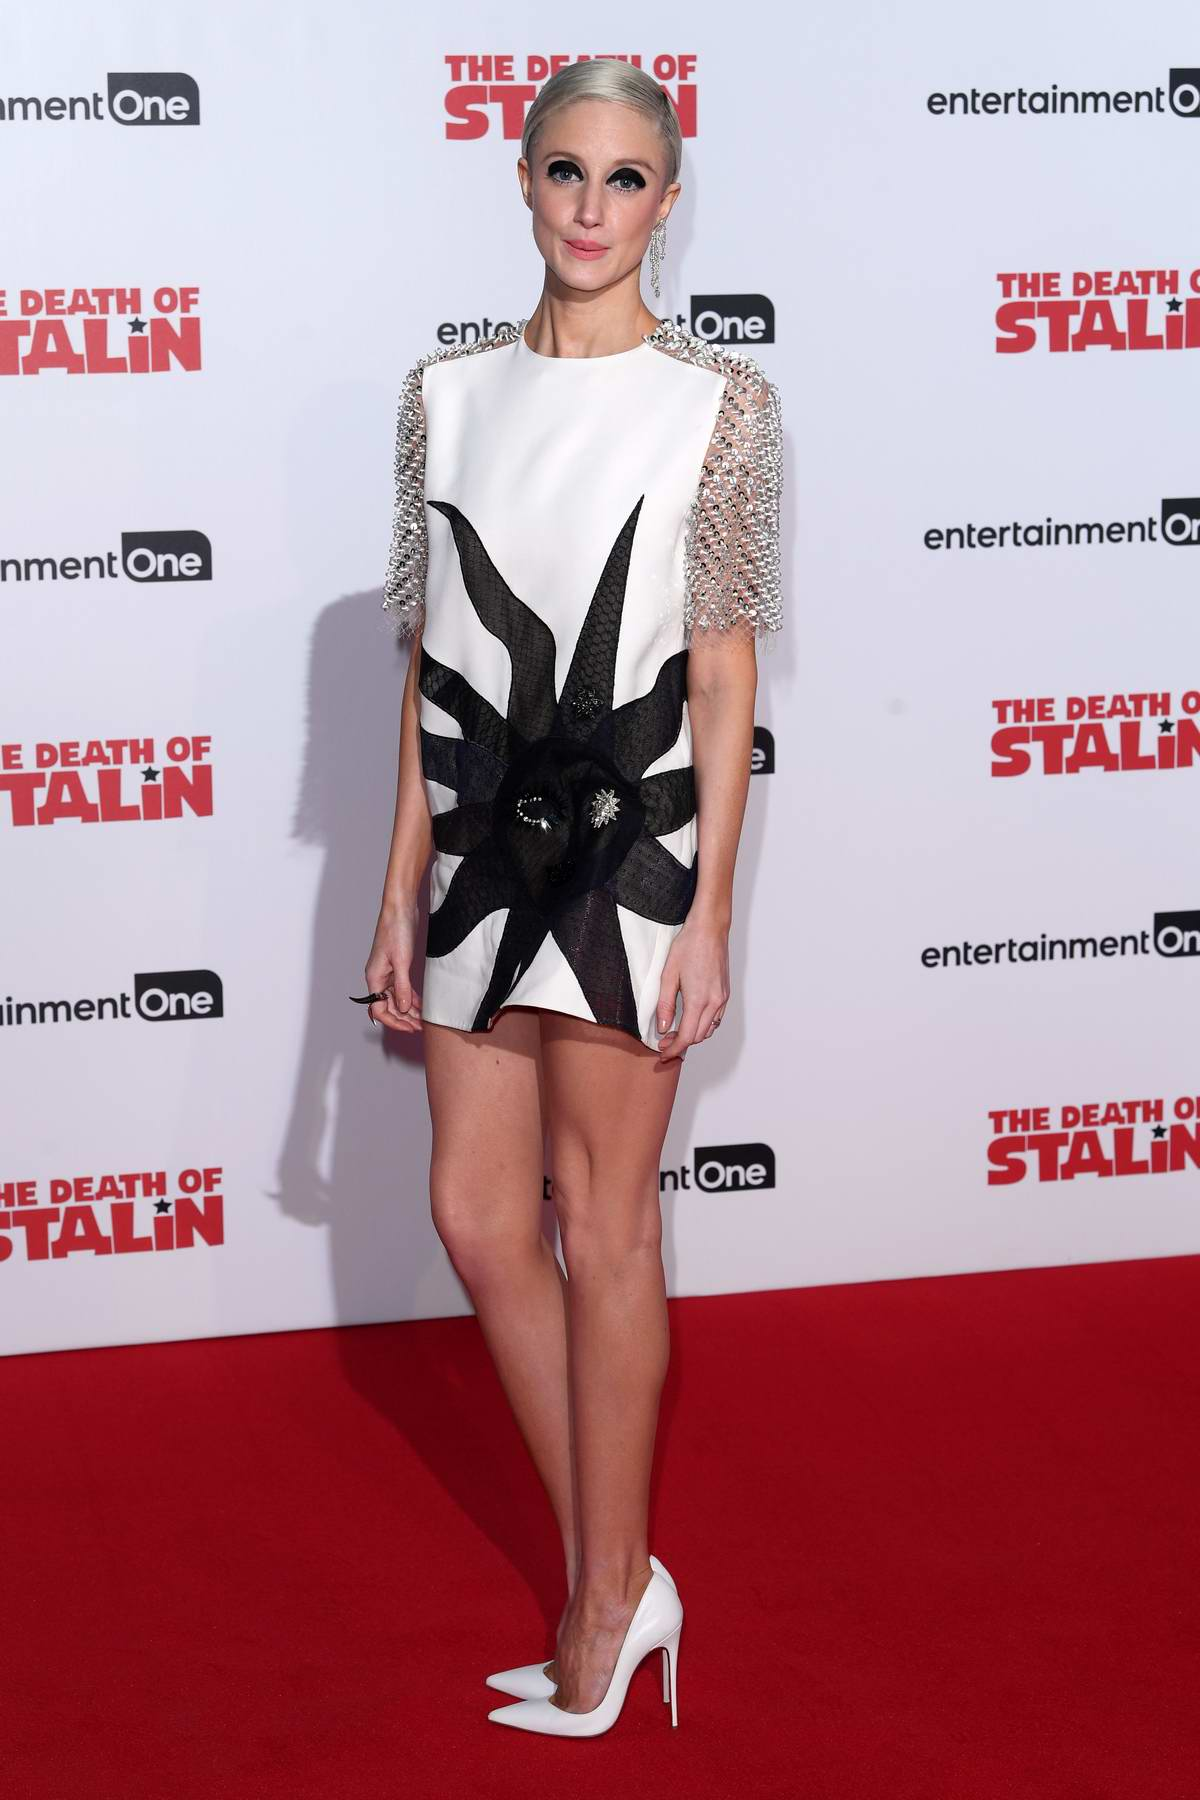 Andrea Riseborough at the premiere of the Death of Stalin in London